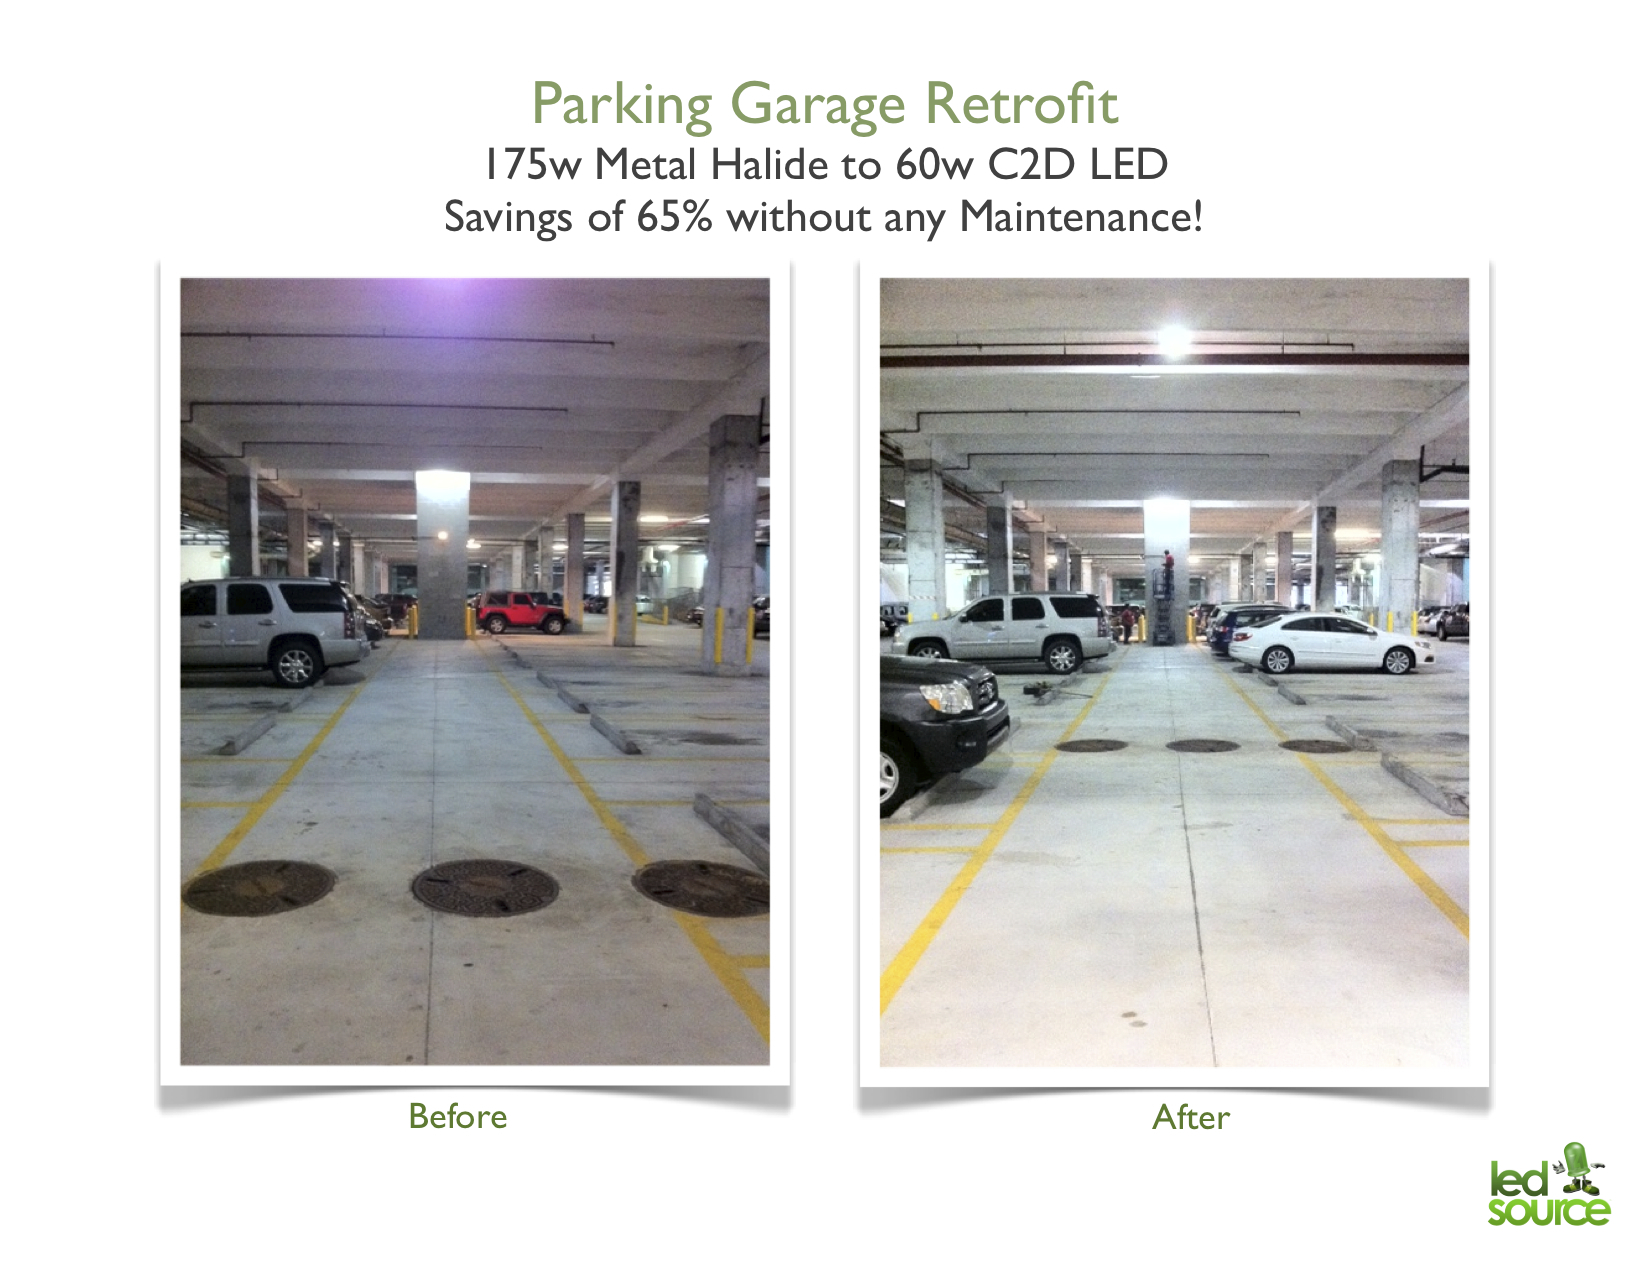 Parking Garages And Led Lighting The Perfect Combination regarding measurements 1651 X 1275